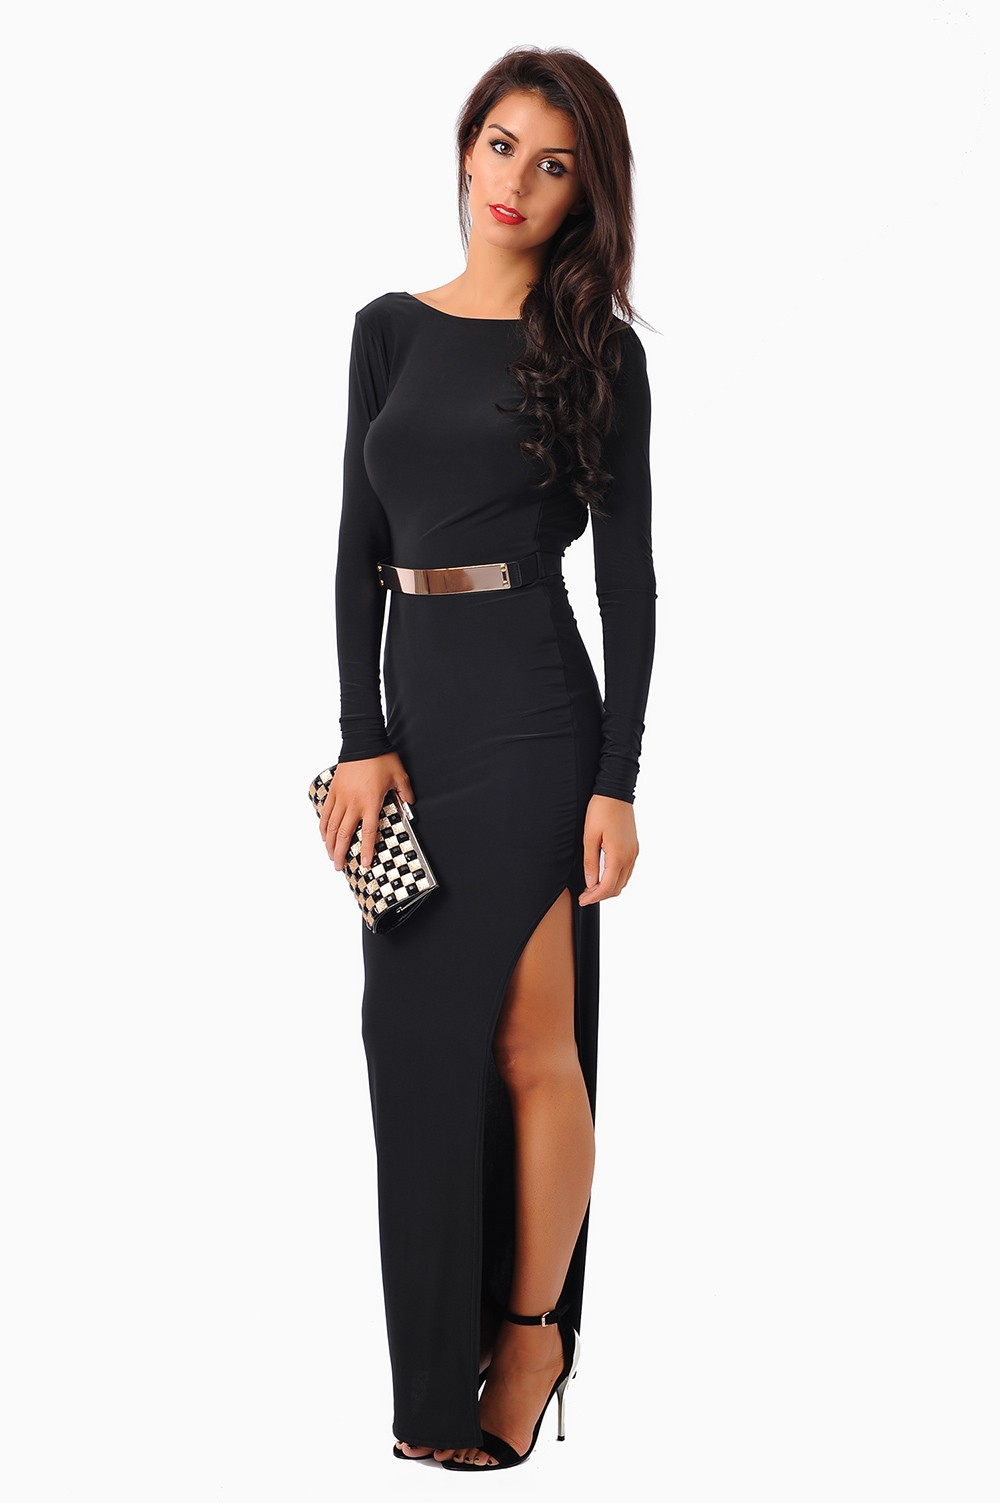 Tammu Back: Tammy Backless High Split Maxi Dress In Black